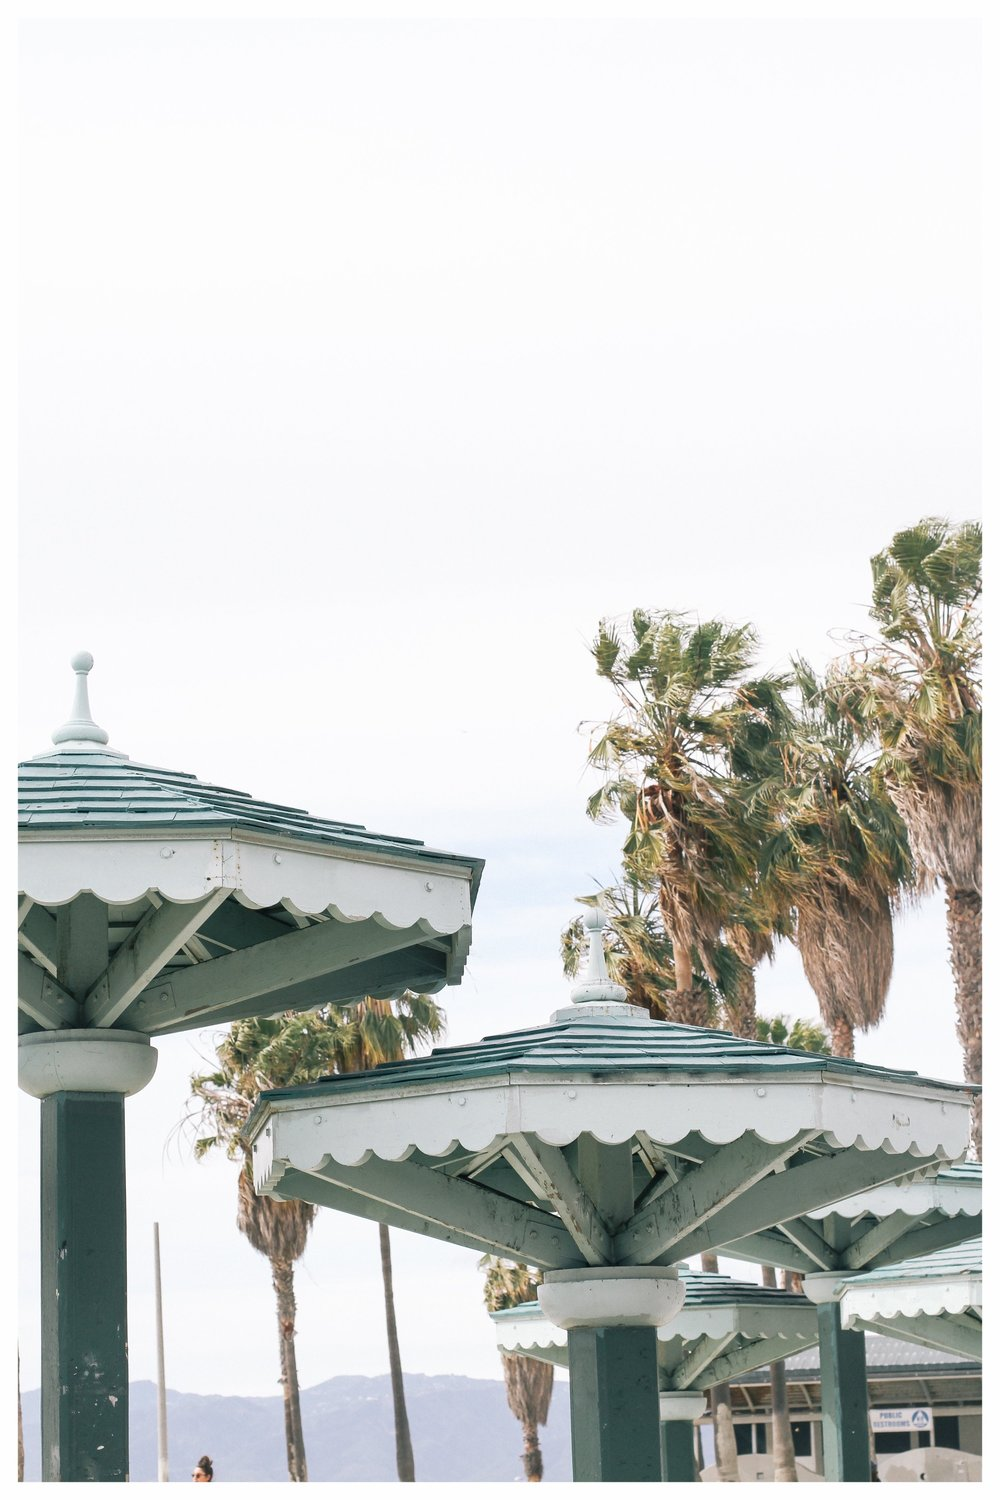 How to See the Charming Side of Los Angeles, California | Stylish things to do, from beaches and restaurants to cultural highlights and the best views. | What to wear in Los Angeles, what to see in Downtown L.A., What to the best food and most photogenic spots to see.